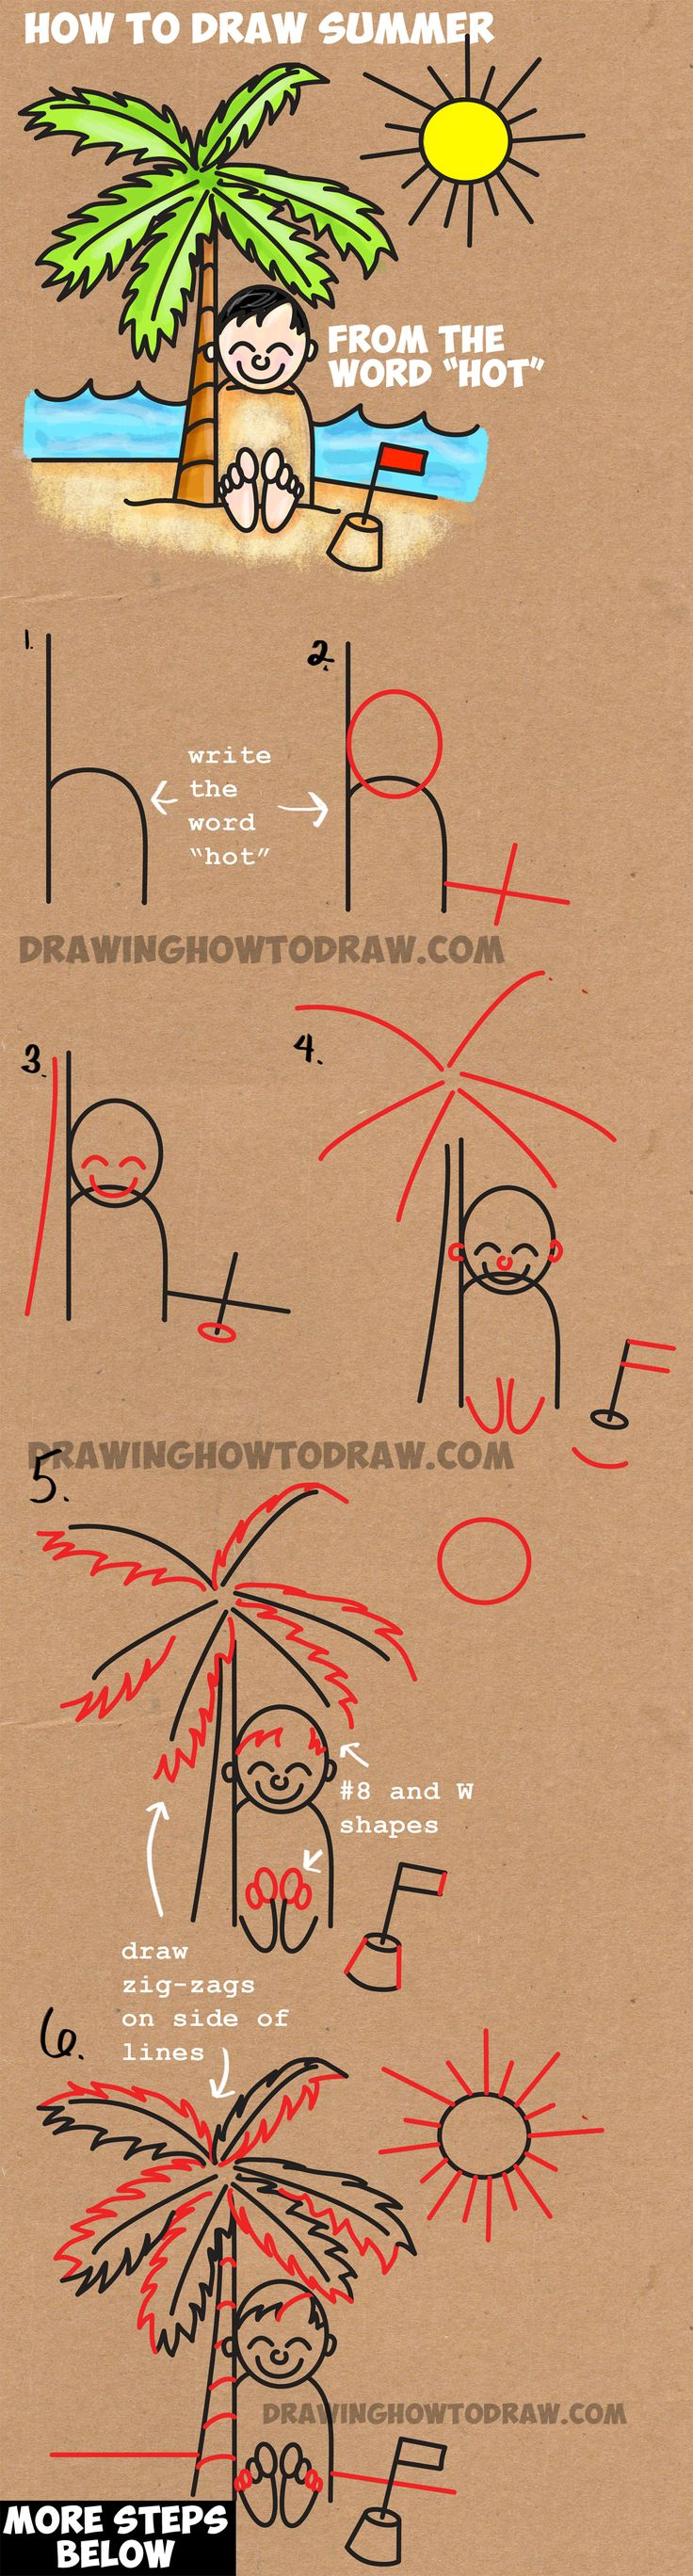 Learn How to Draw a Cartoon Boy Buried in Sand Summer Beach Scene - Simple Step by Step Word Cartoon Drawing Lesson for Kids